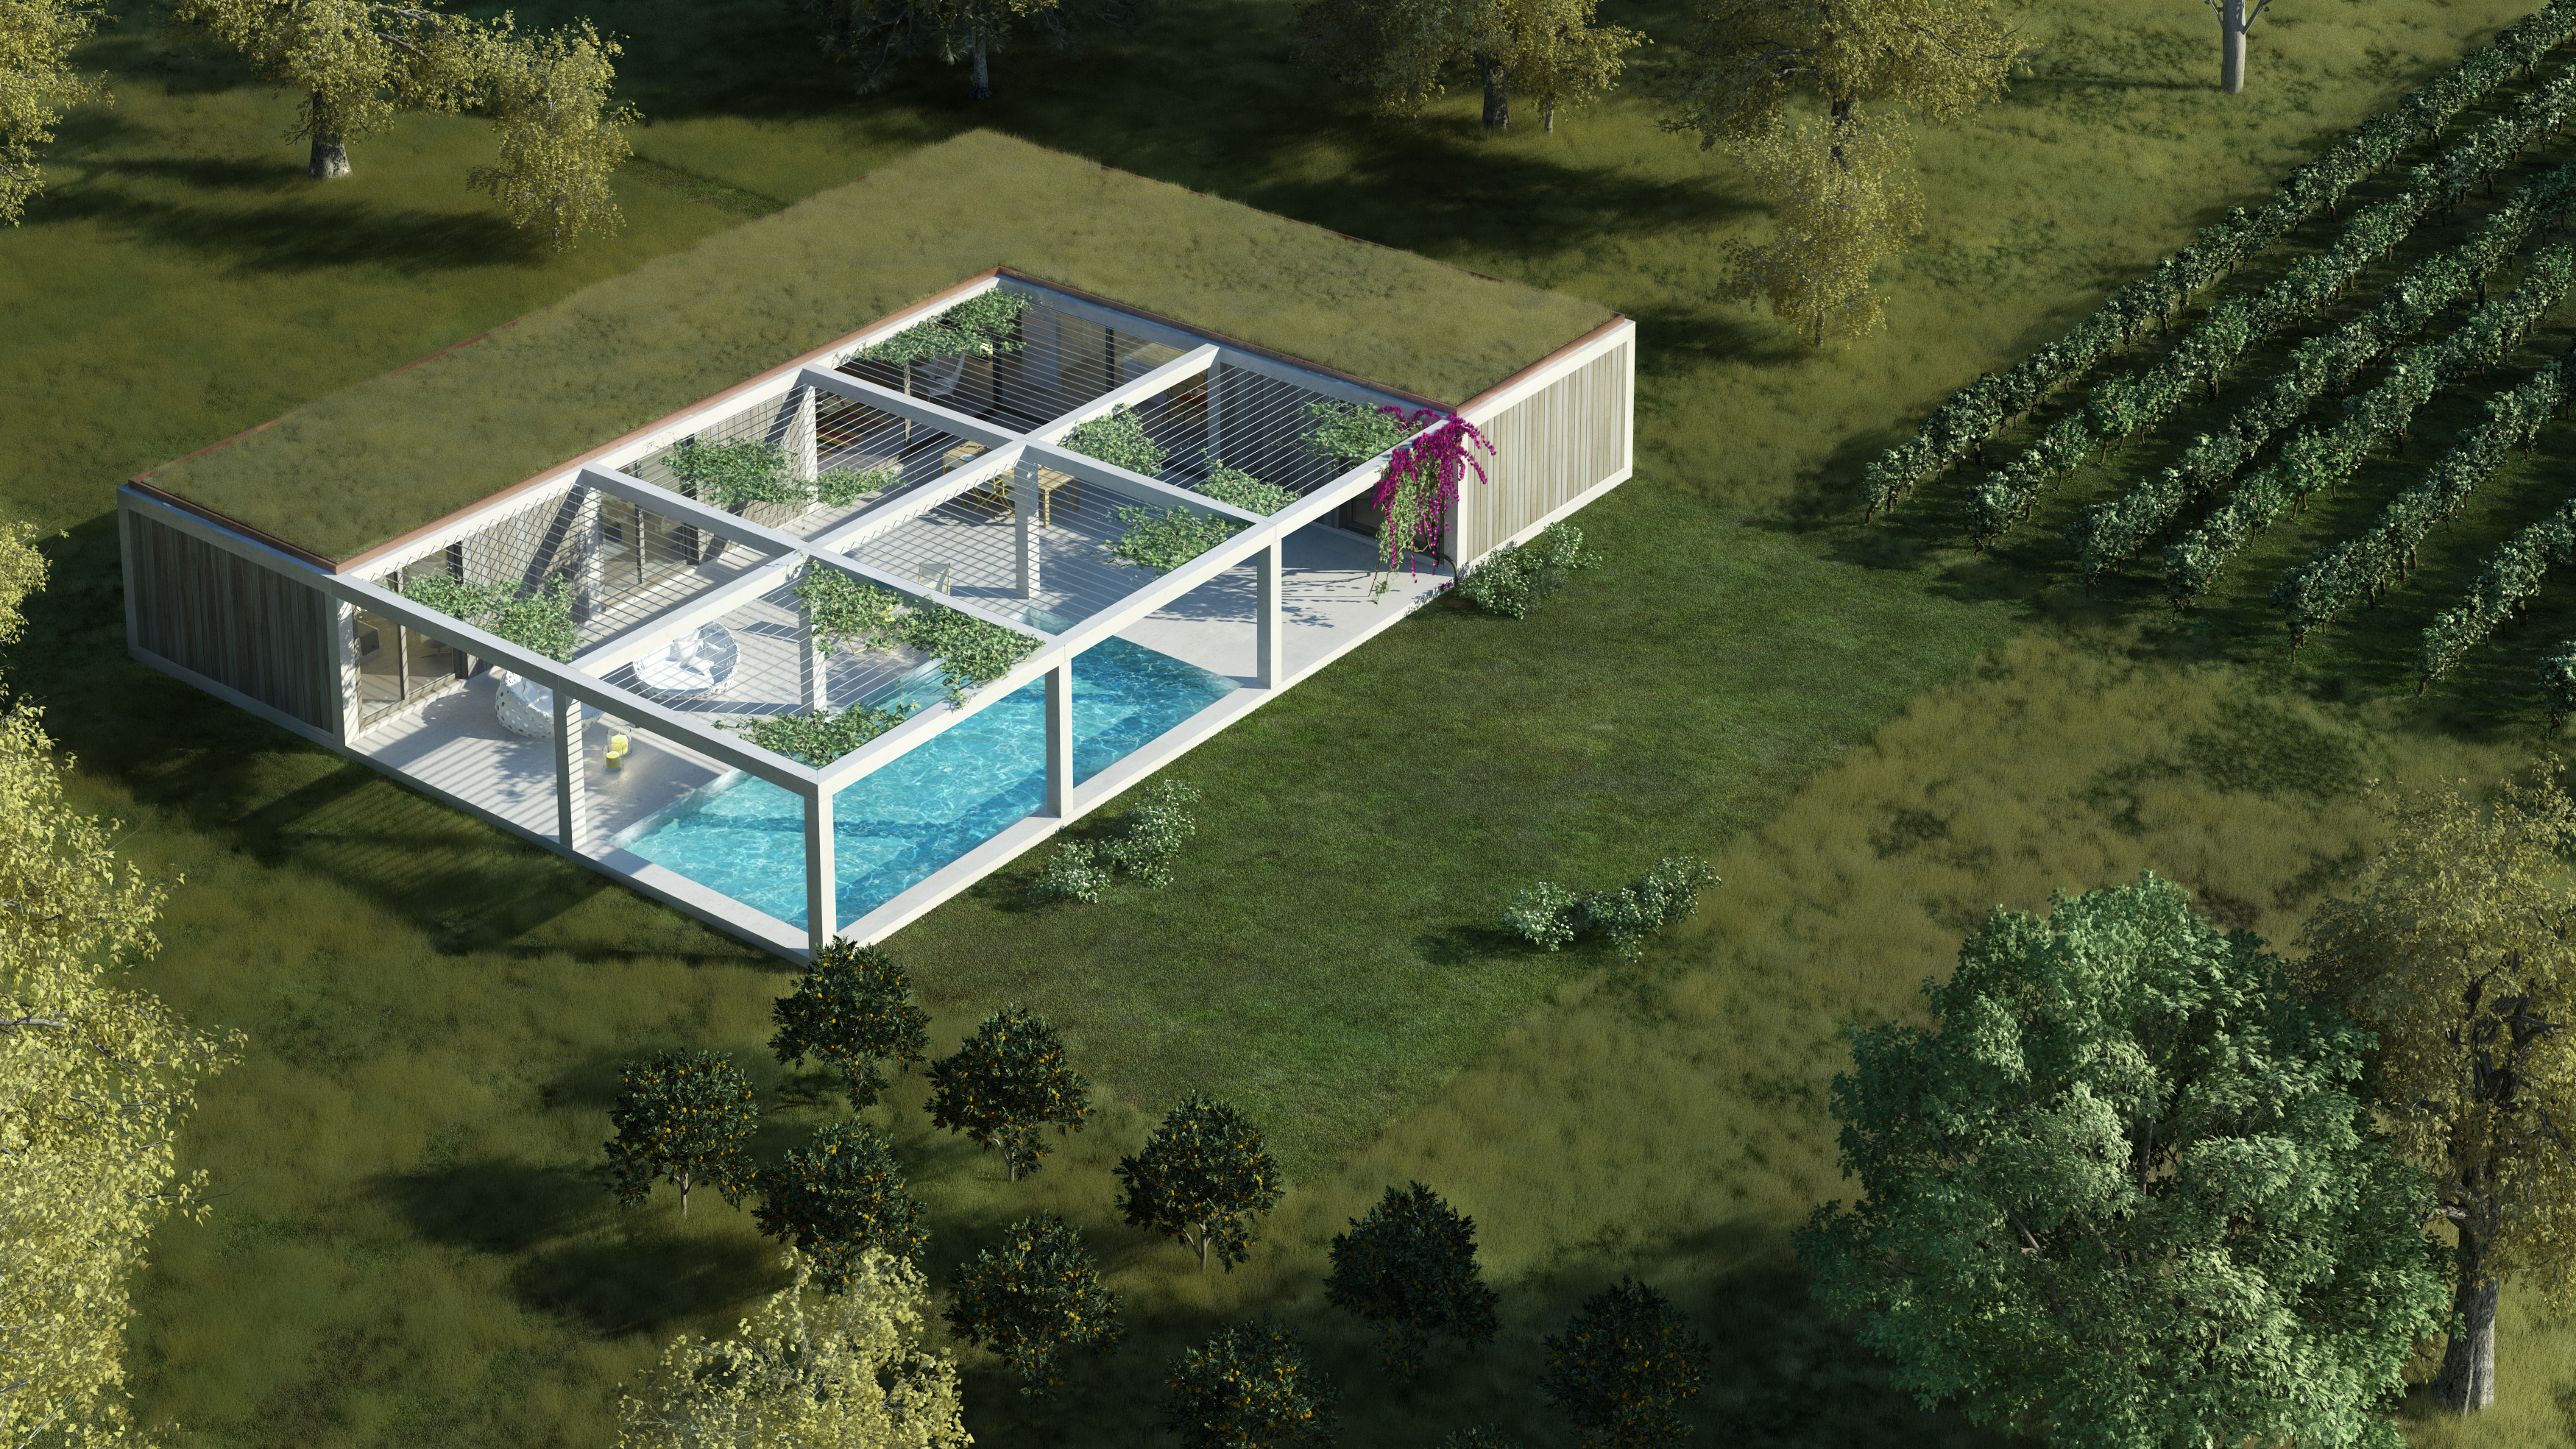 3 bedroom villa with a swimming pool